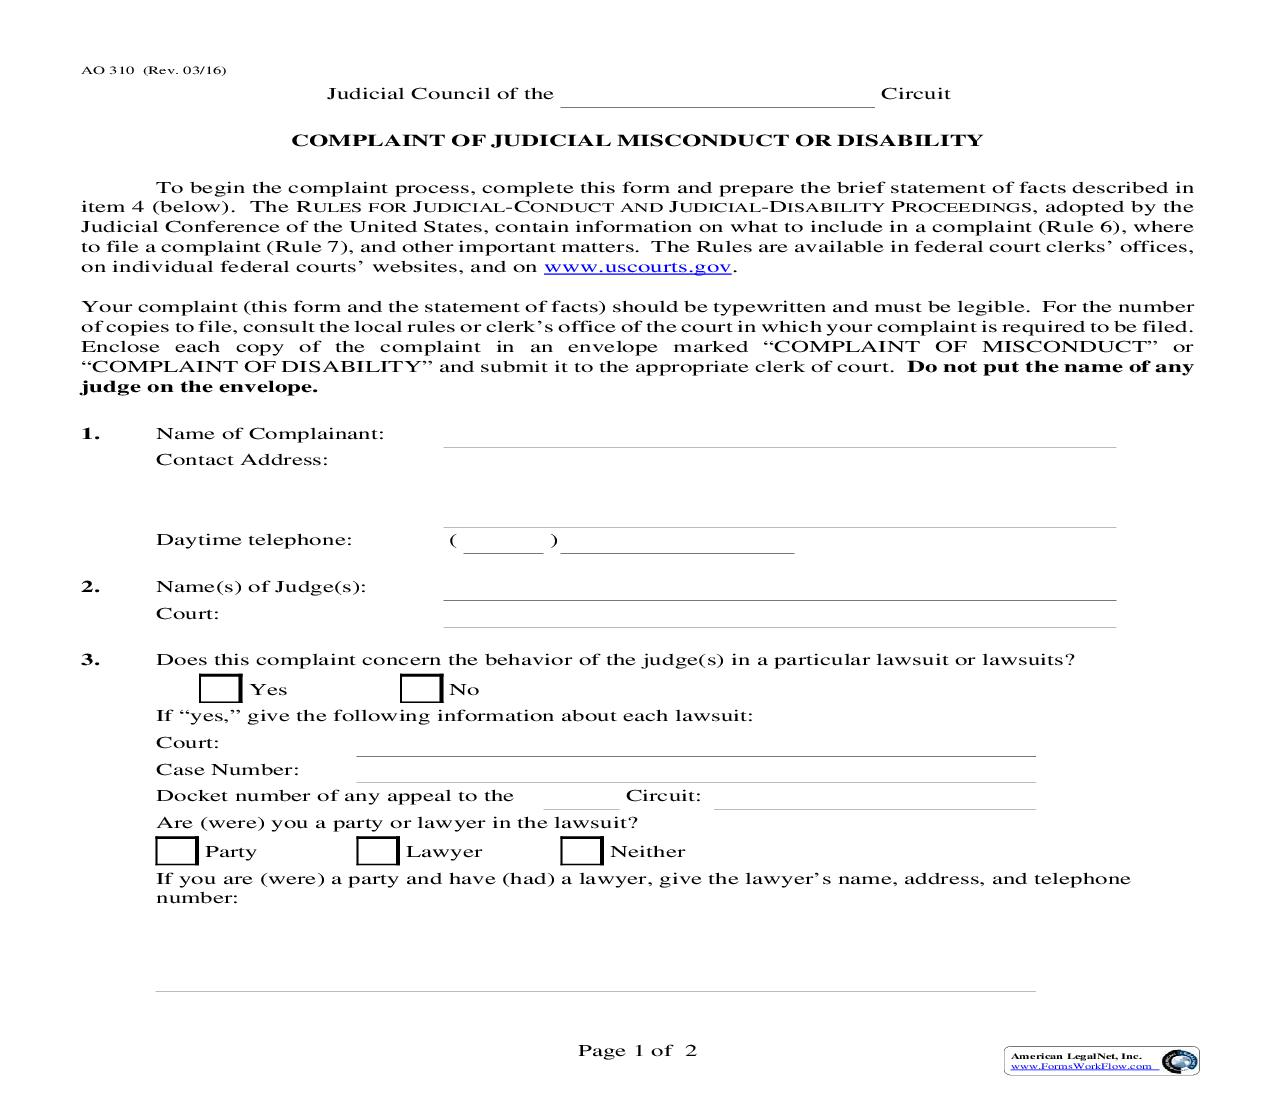 Complaint Of Judicial Misconduct Or Disability {AO 310} | Pdf Fpdf Doc Docx | Official Federal Forms